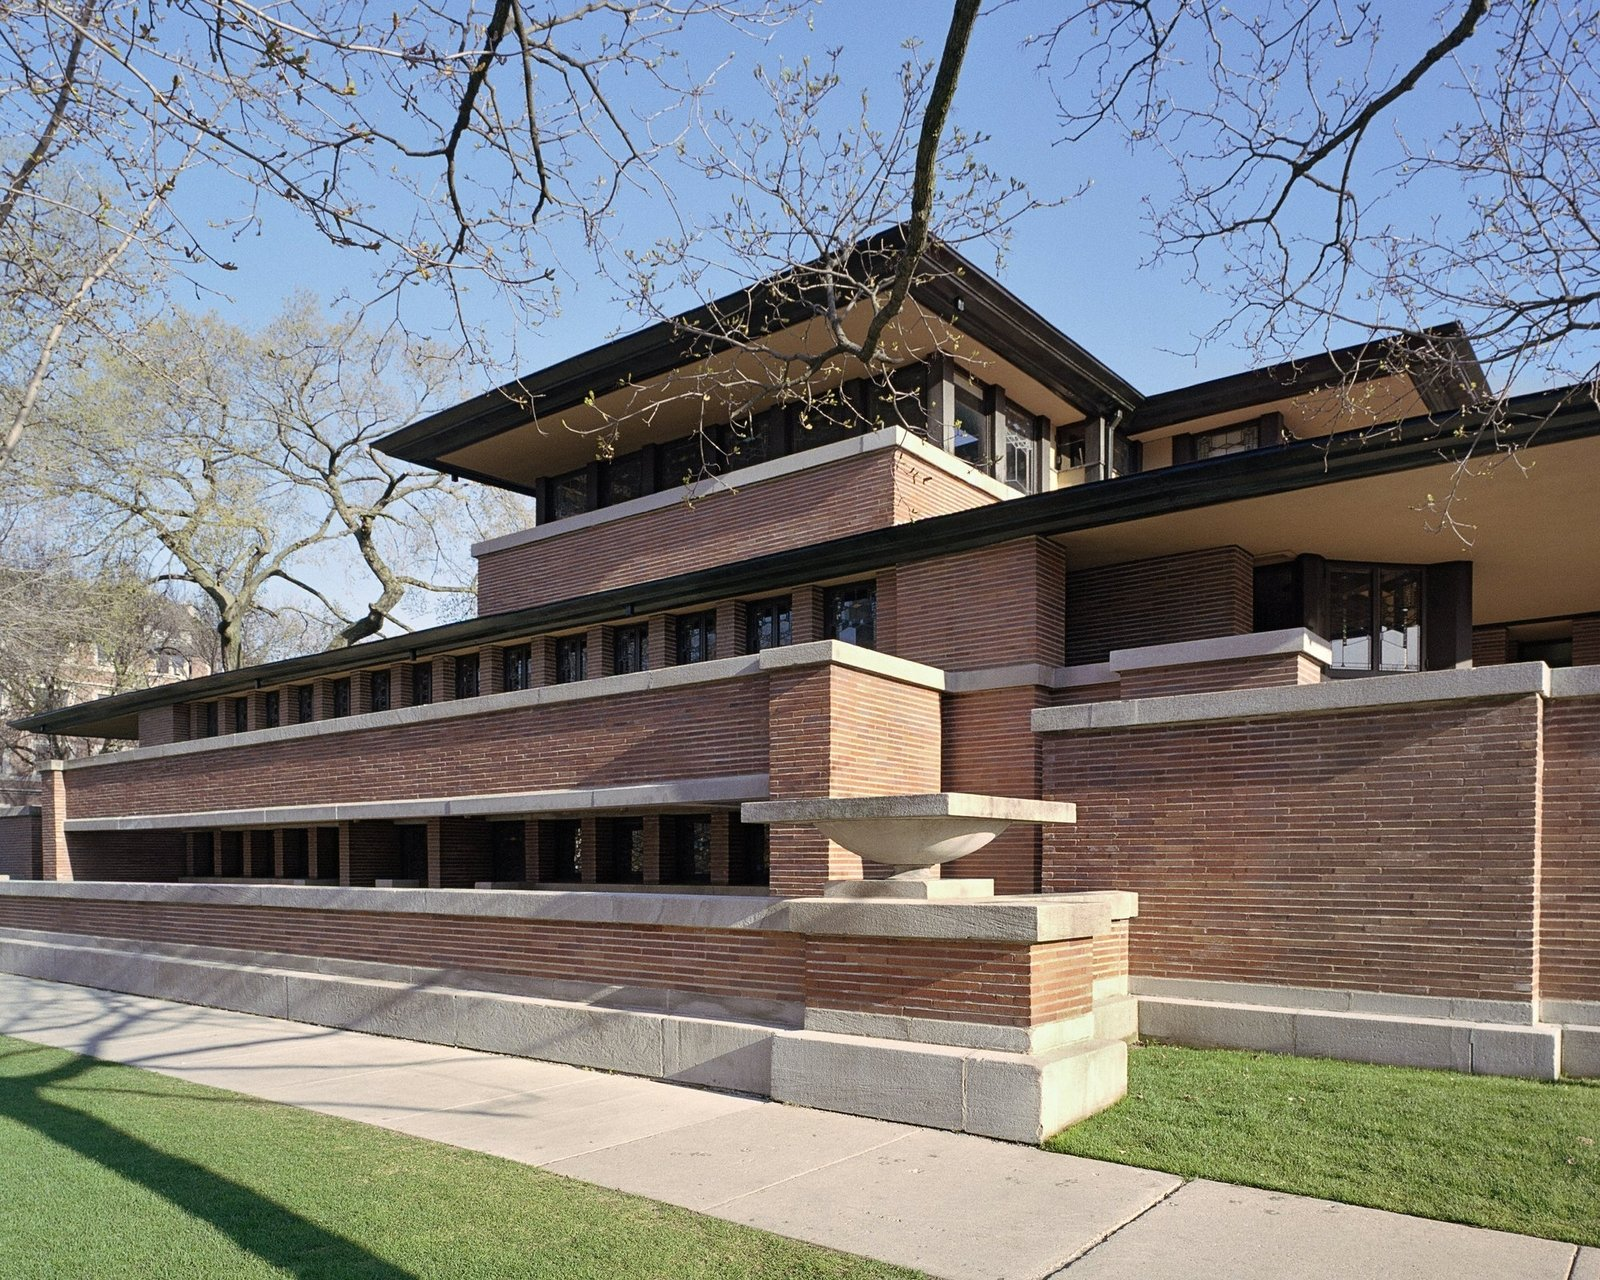 The Frederick C. Robie house, south elevation, Chicago, Illinois, by Frank Lloyd Wright. 10 Frank Lloyd Wright Buildings We Love - Photo 8 of 10